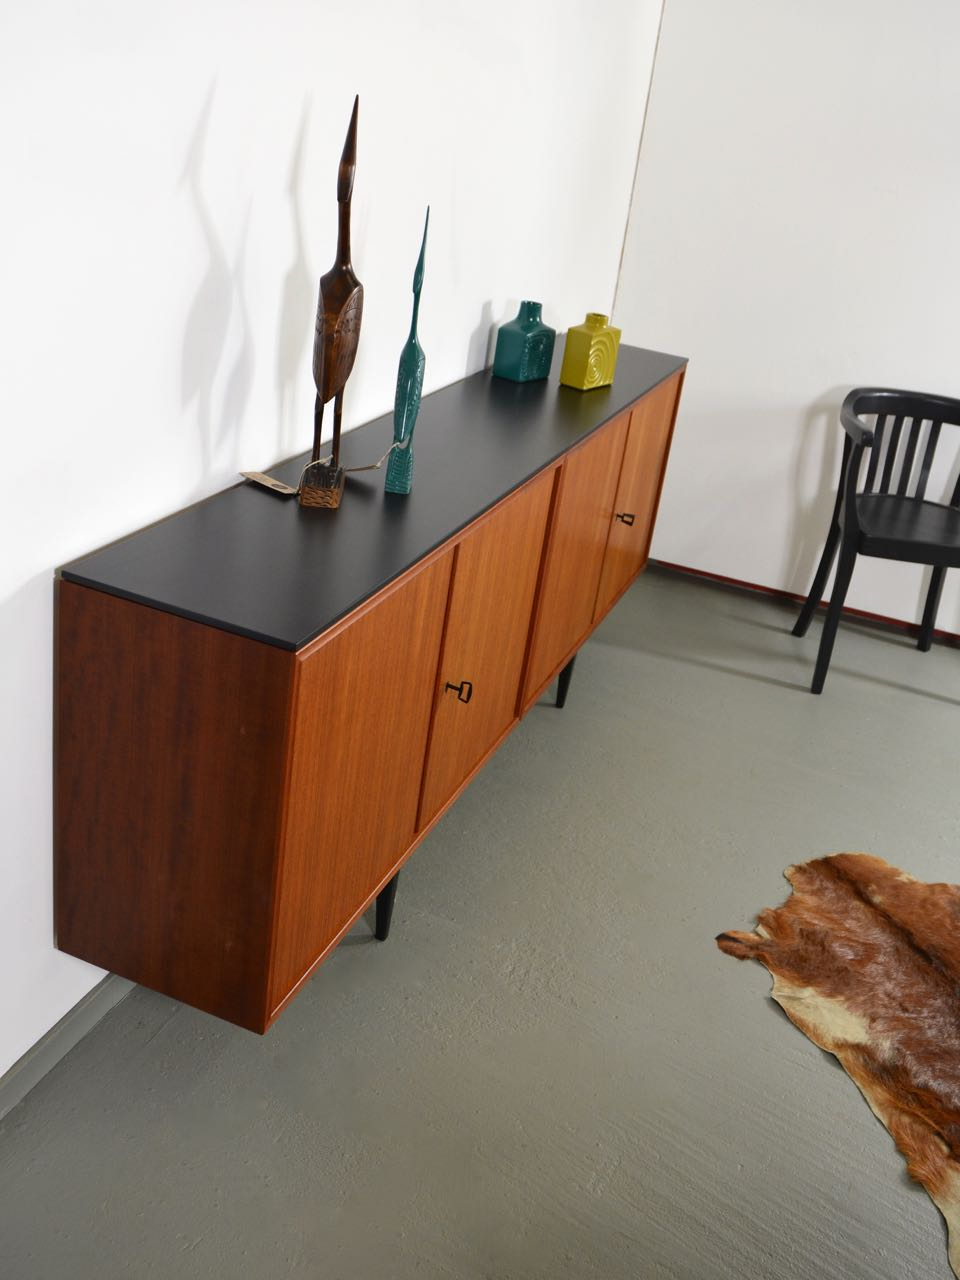 Langes Sideboard Sold! Langes 60s Teak Sideboard - 2 Meter !! - Retro Salon